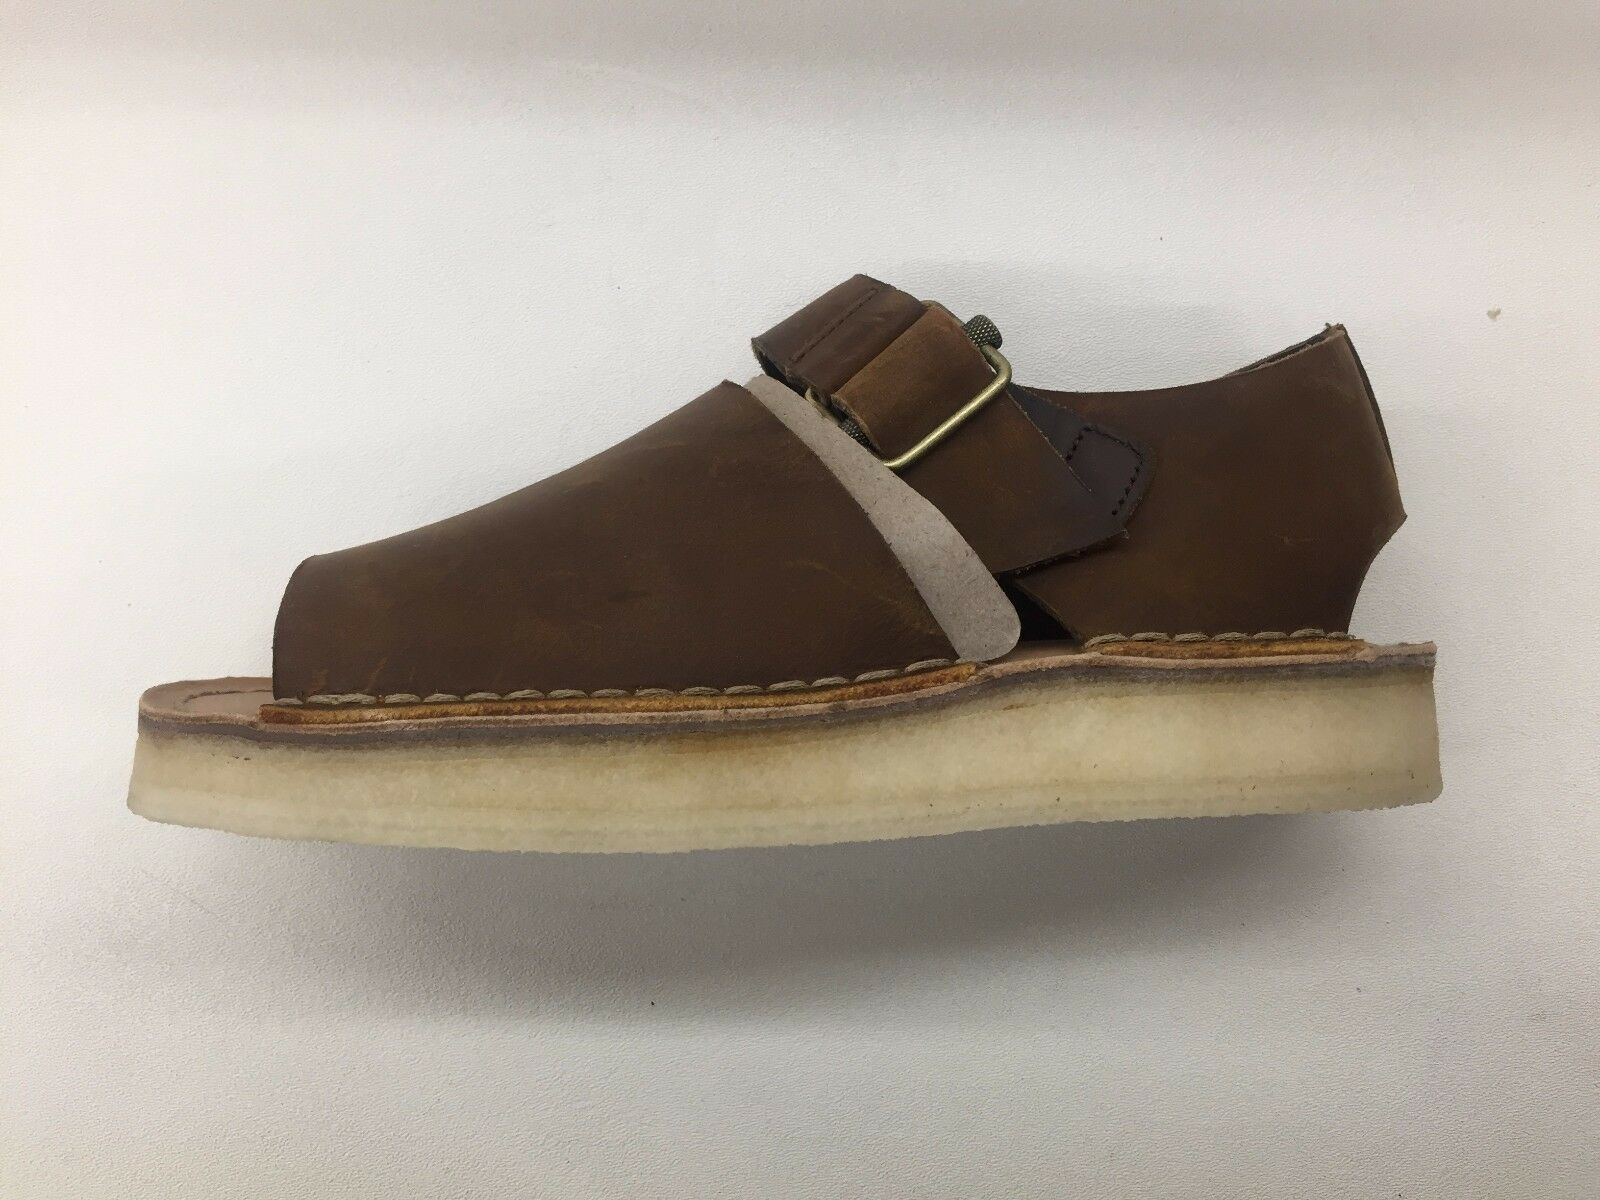 CLARKS ORIGINALS TREK STRAP Marroneee LEATHER CREPE MENS CLOSED CLOSED CLOSED TOE SANDALS 22994 5a4e72